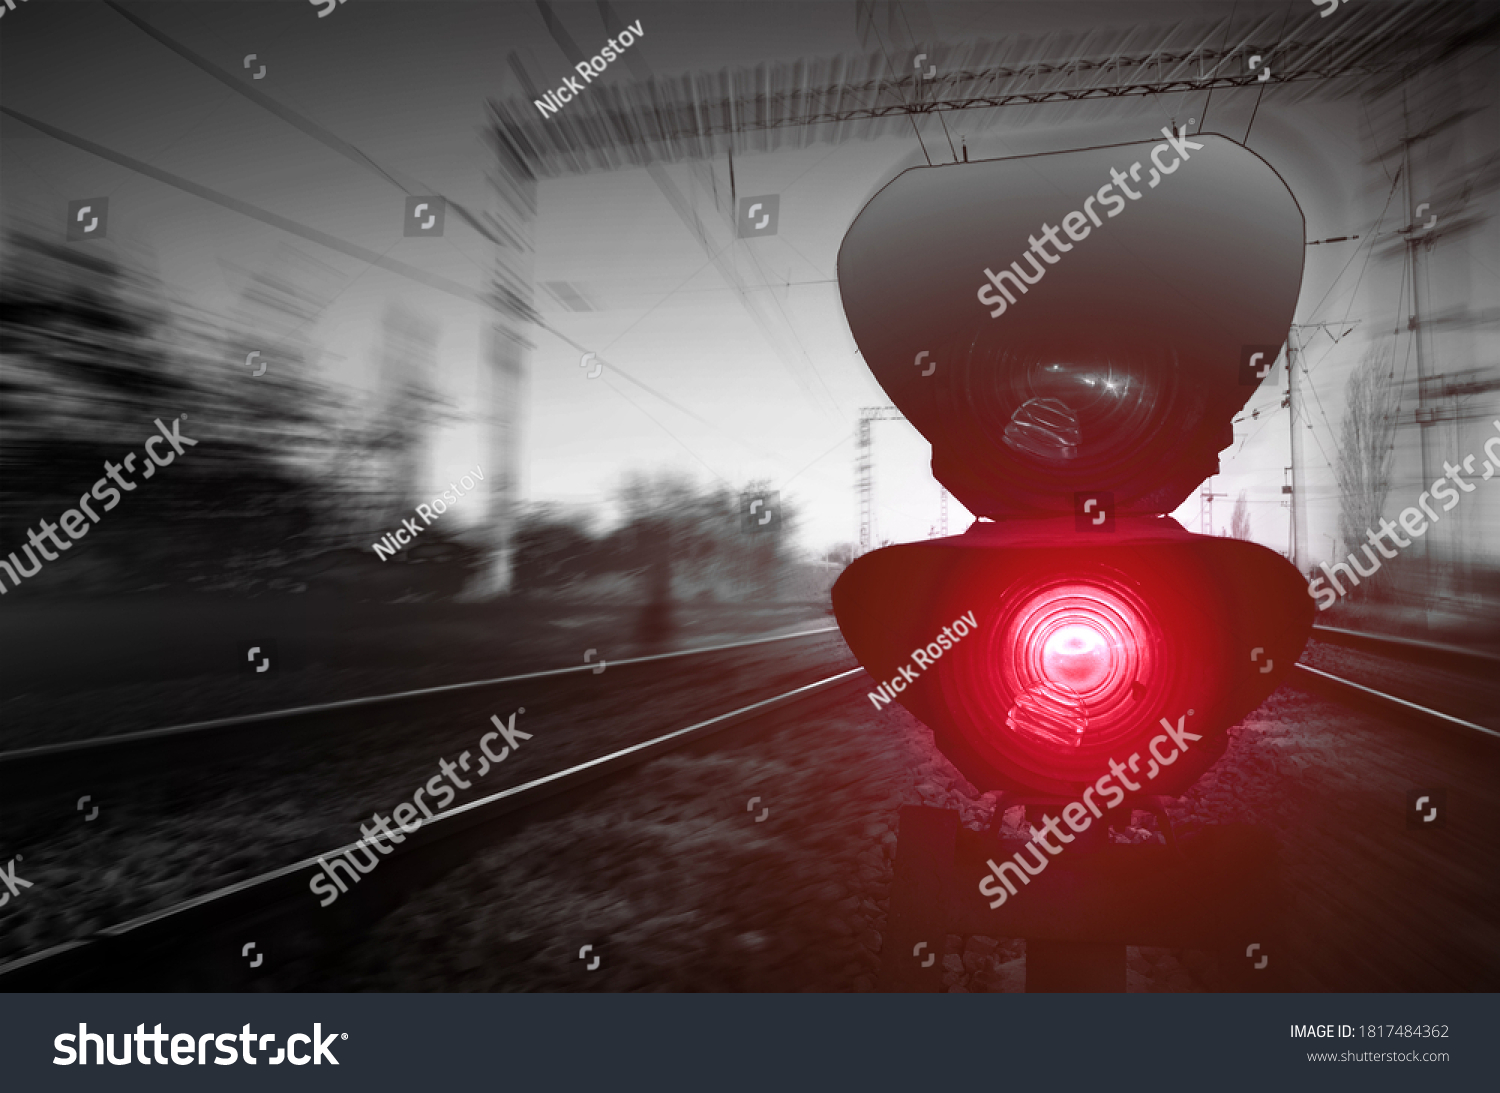 Railroad crossing and red light traffic light. Motion blurred background.